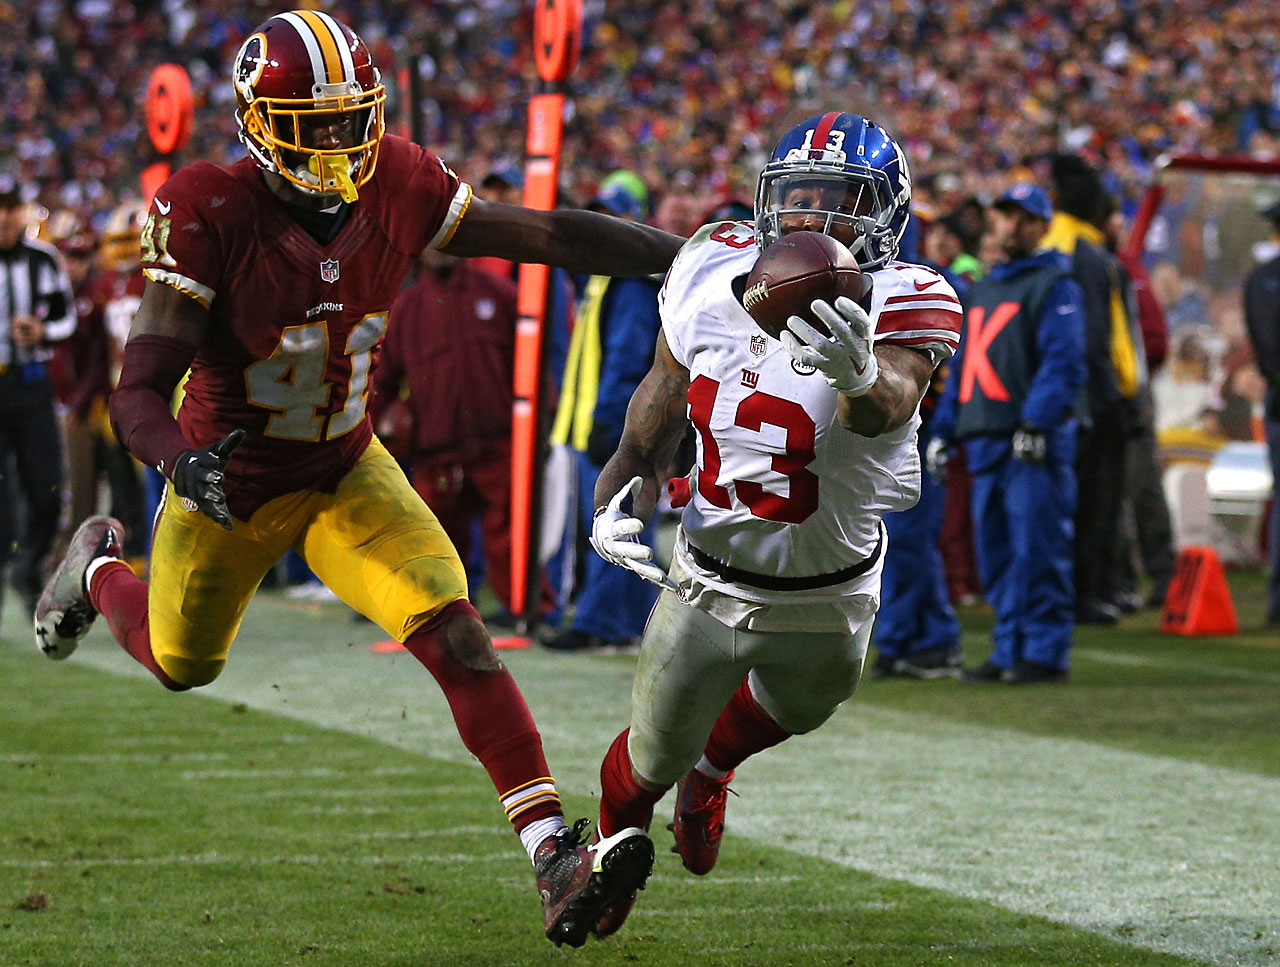 Nov. 29, 2015: Odell Beckham of the New York Giants scores a fourth-quarter touchdown past cornerback Will Blackmon of the Washington Redskins.